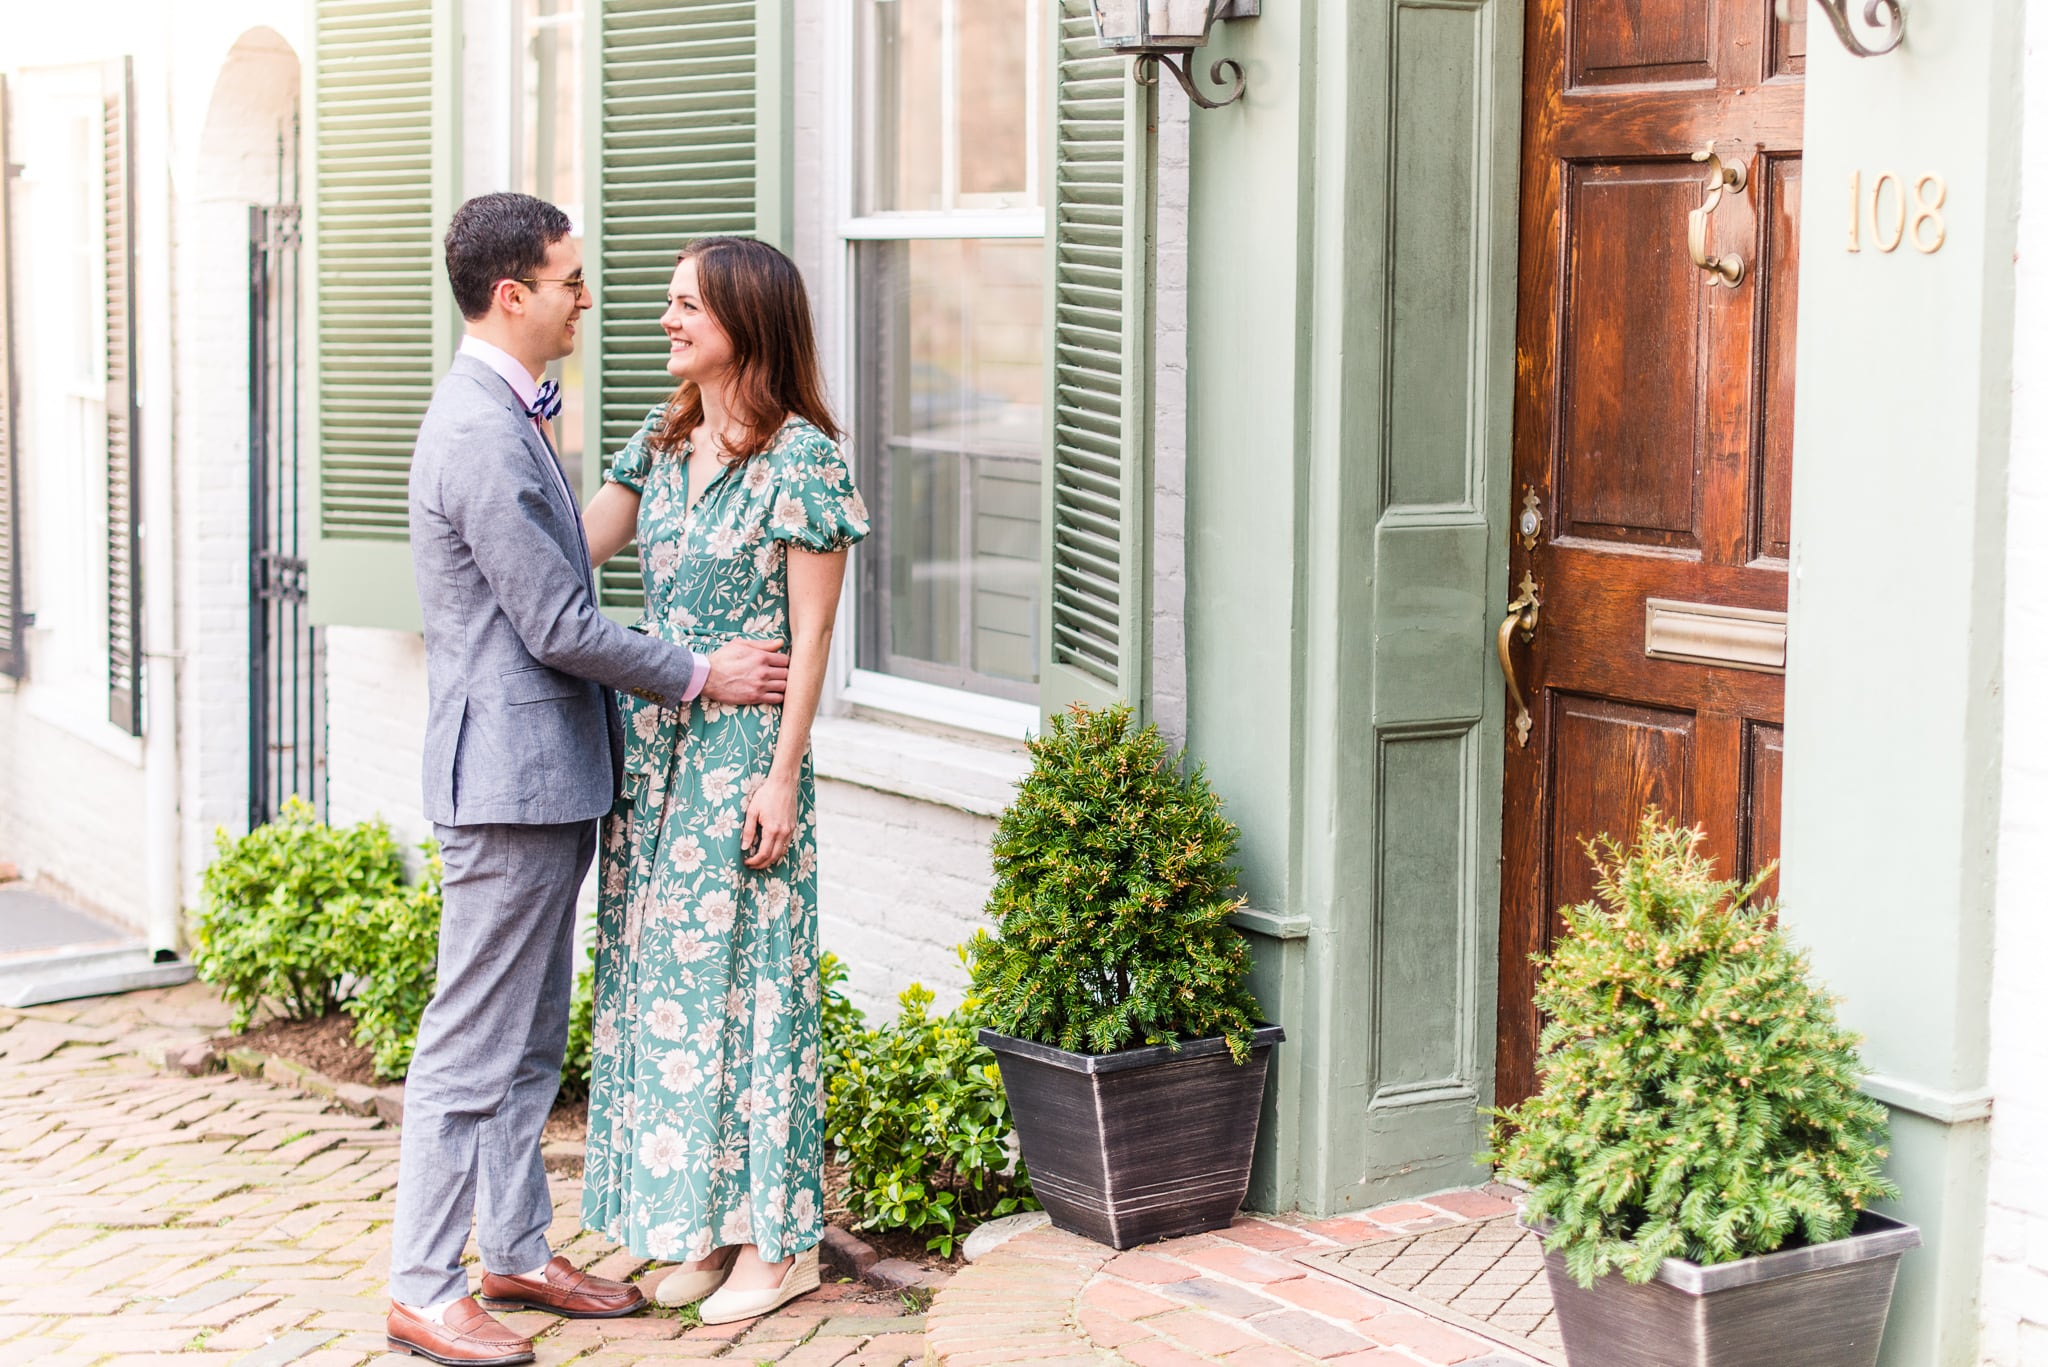 An engaged couple stand together on the sidewalk outside a historic building during their engagement session in Old Town Alexandria